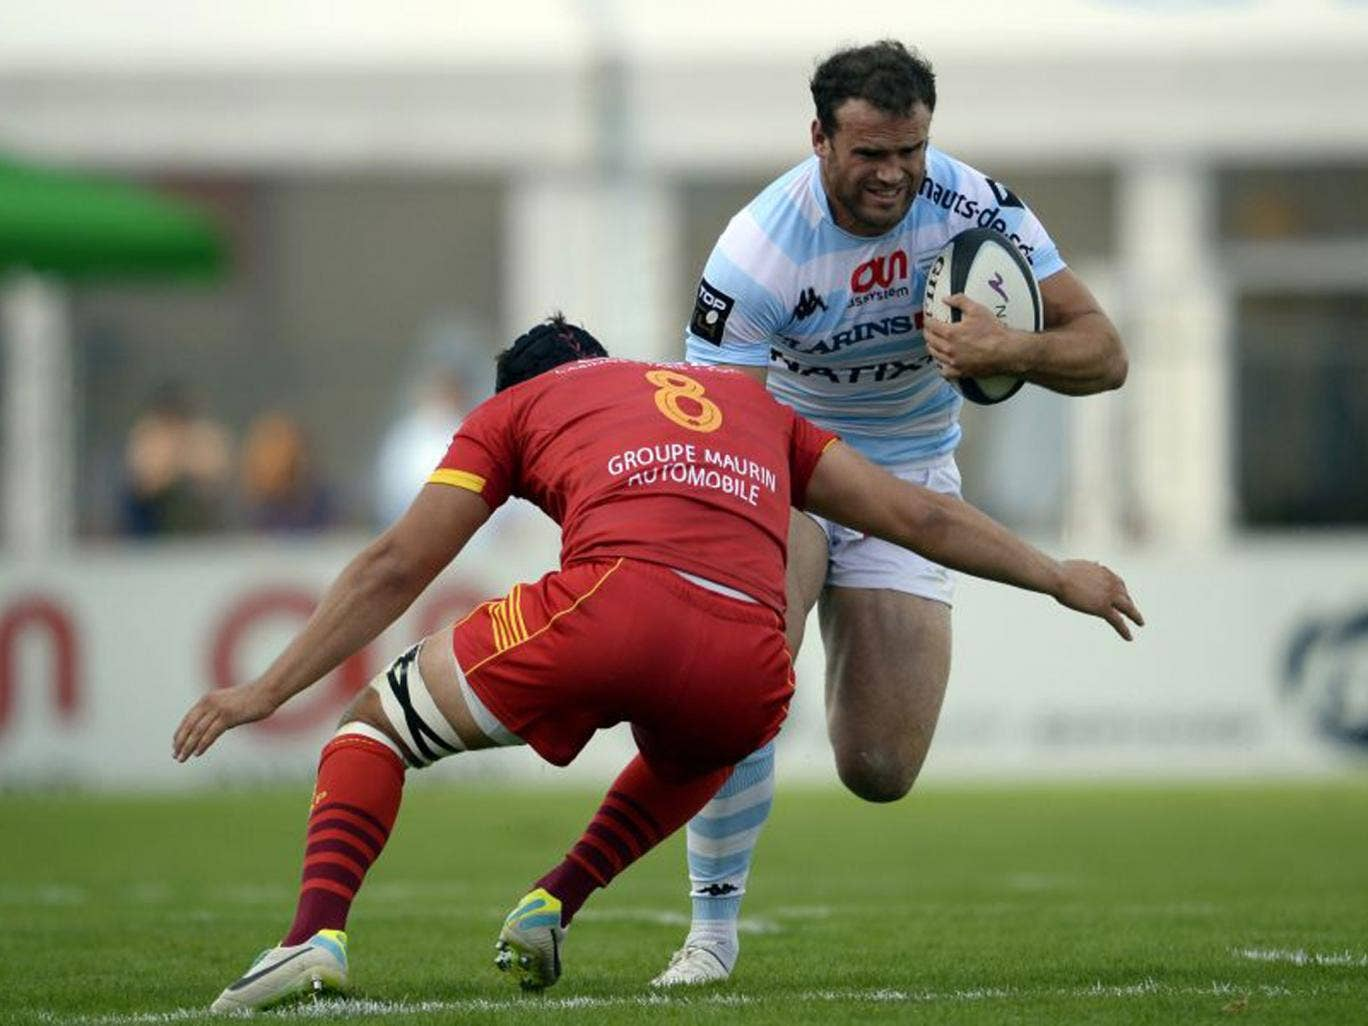 Jamie Roberts hurt his ankle while playing for Racing Metro